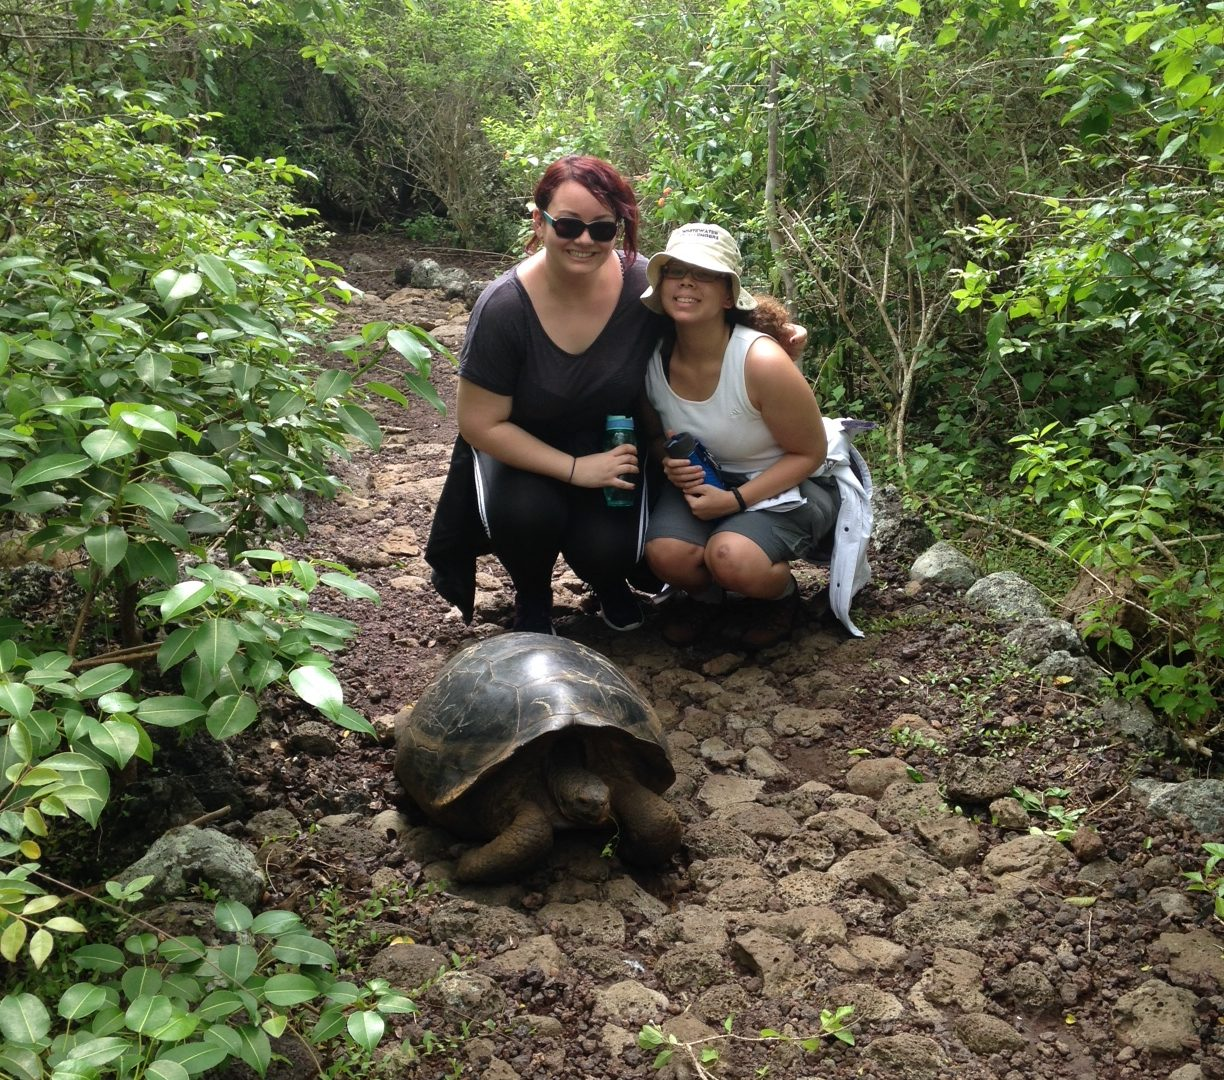 Macaulay students with tortoise in the Galapagos